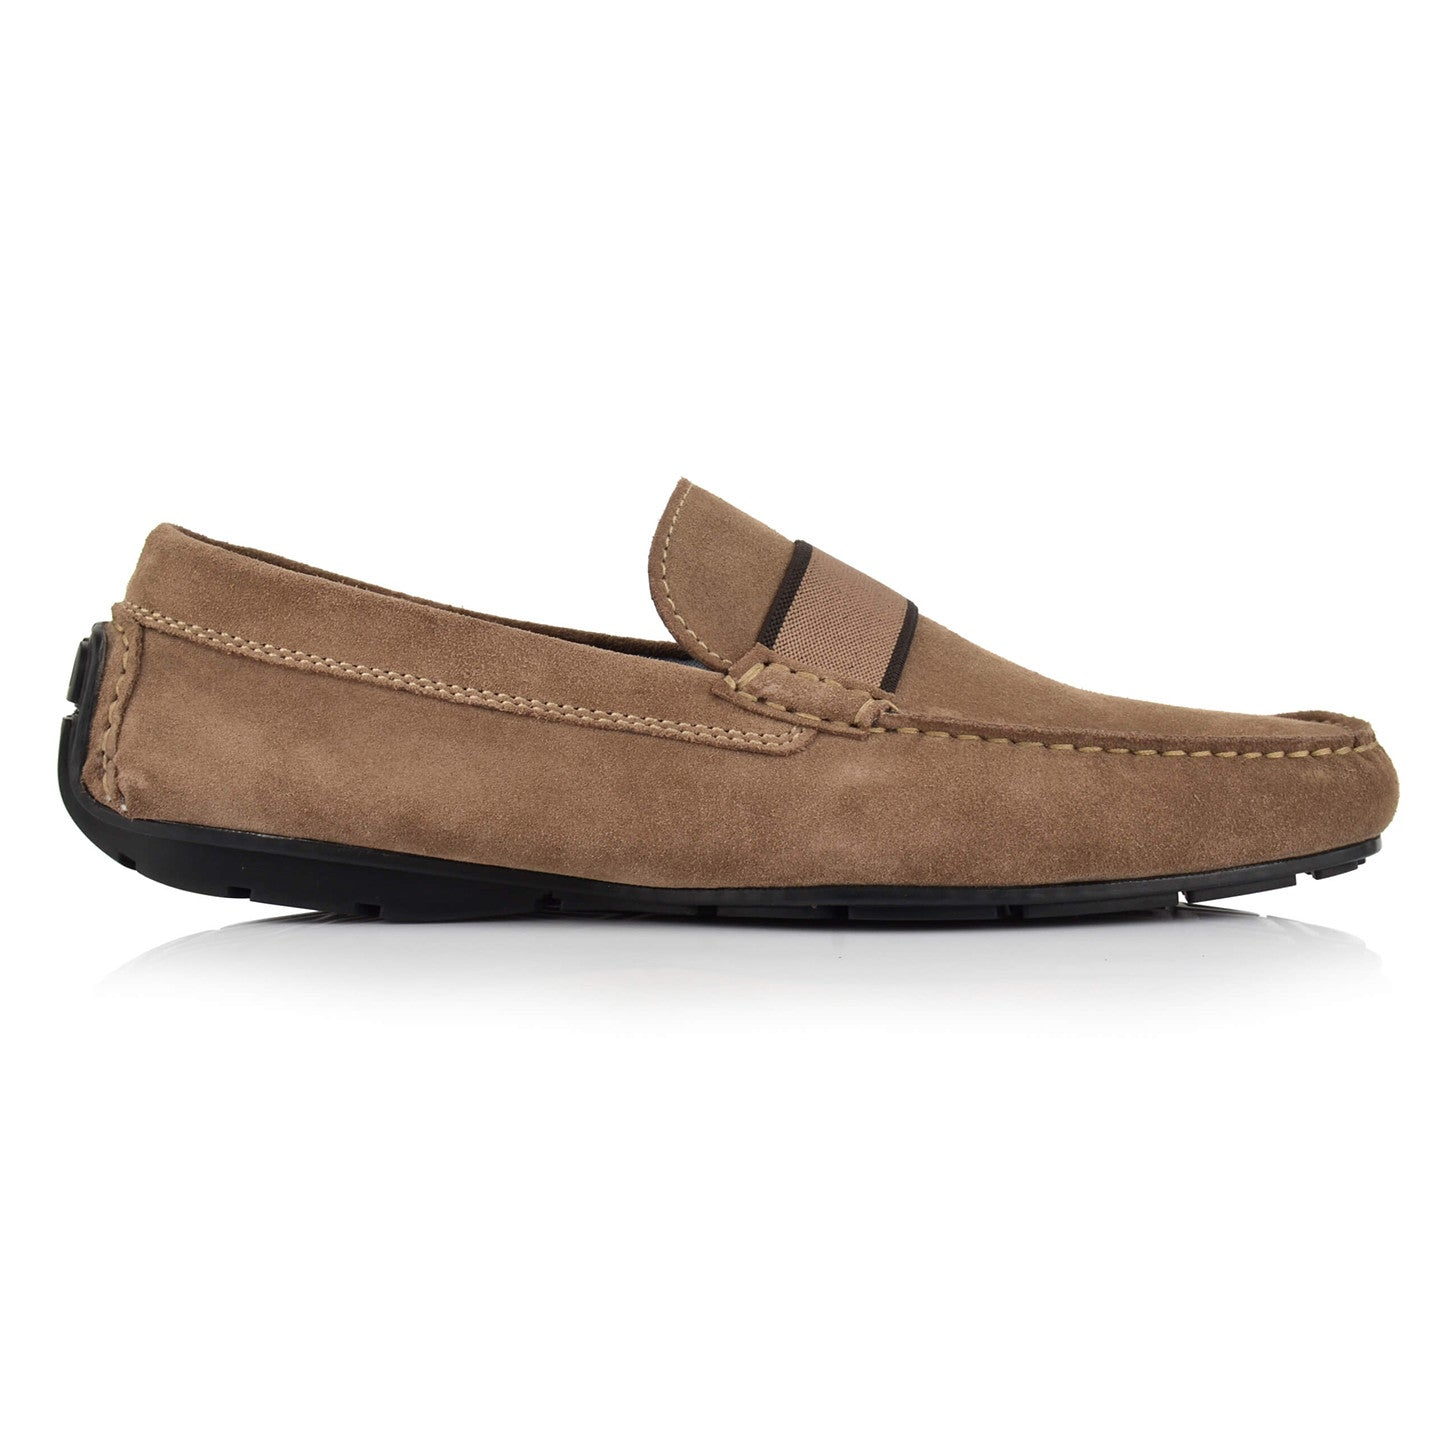 LM501 - Language Baron Men's Casual Brown Drivers